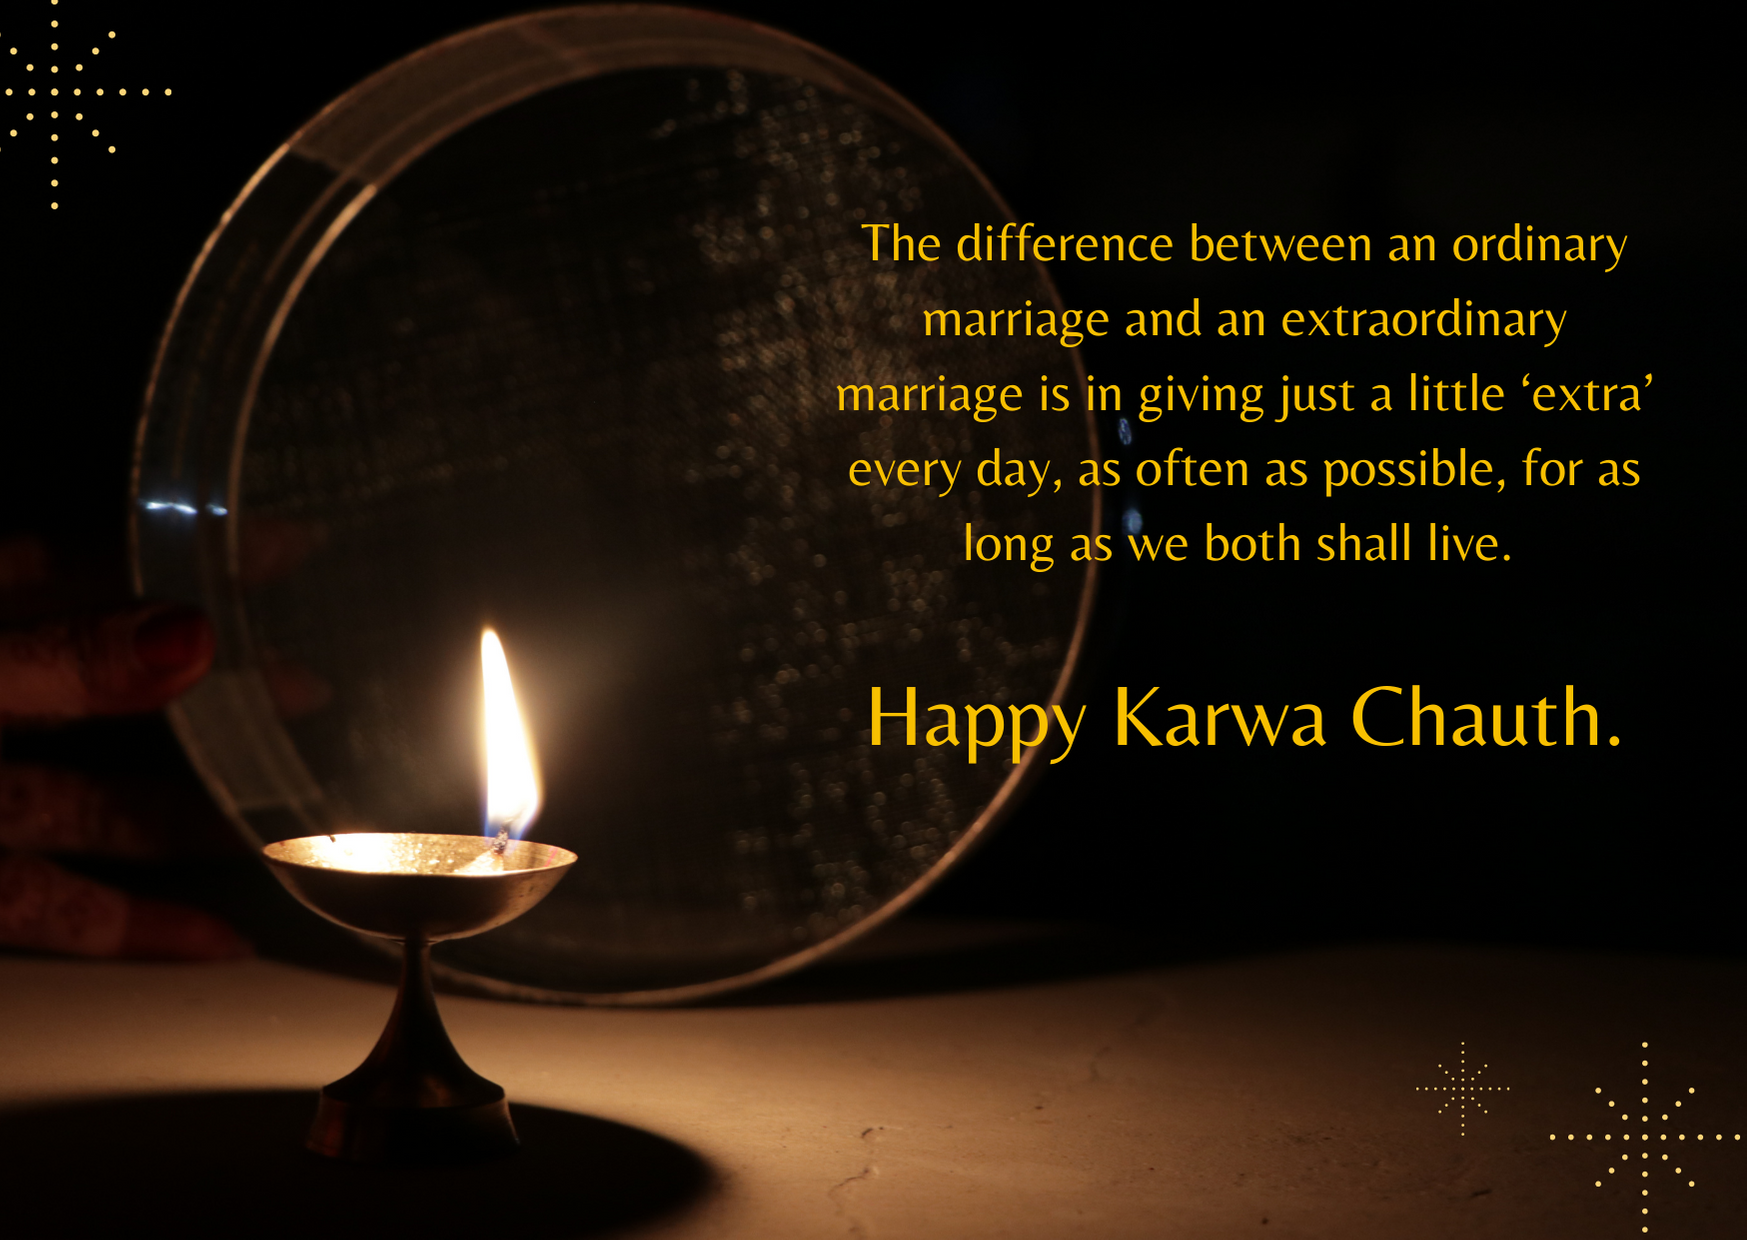 karwa chauth best wishes